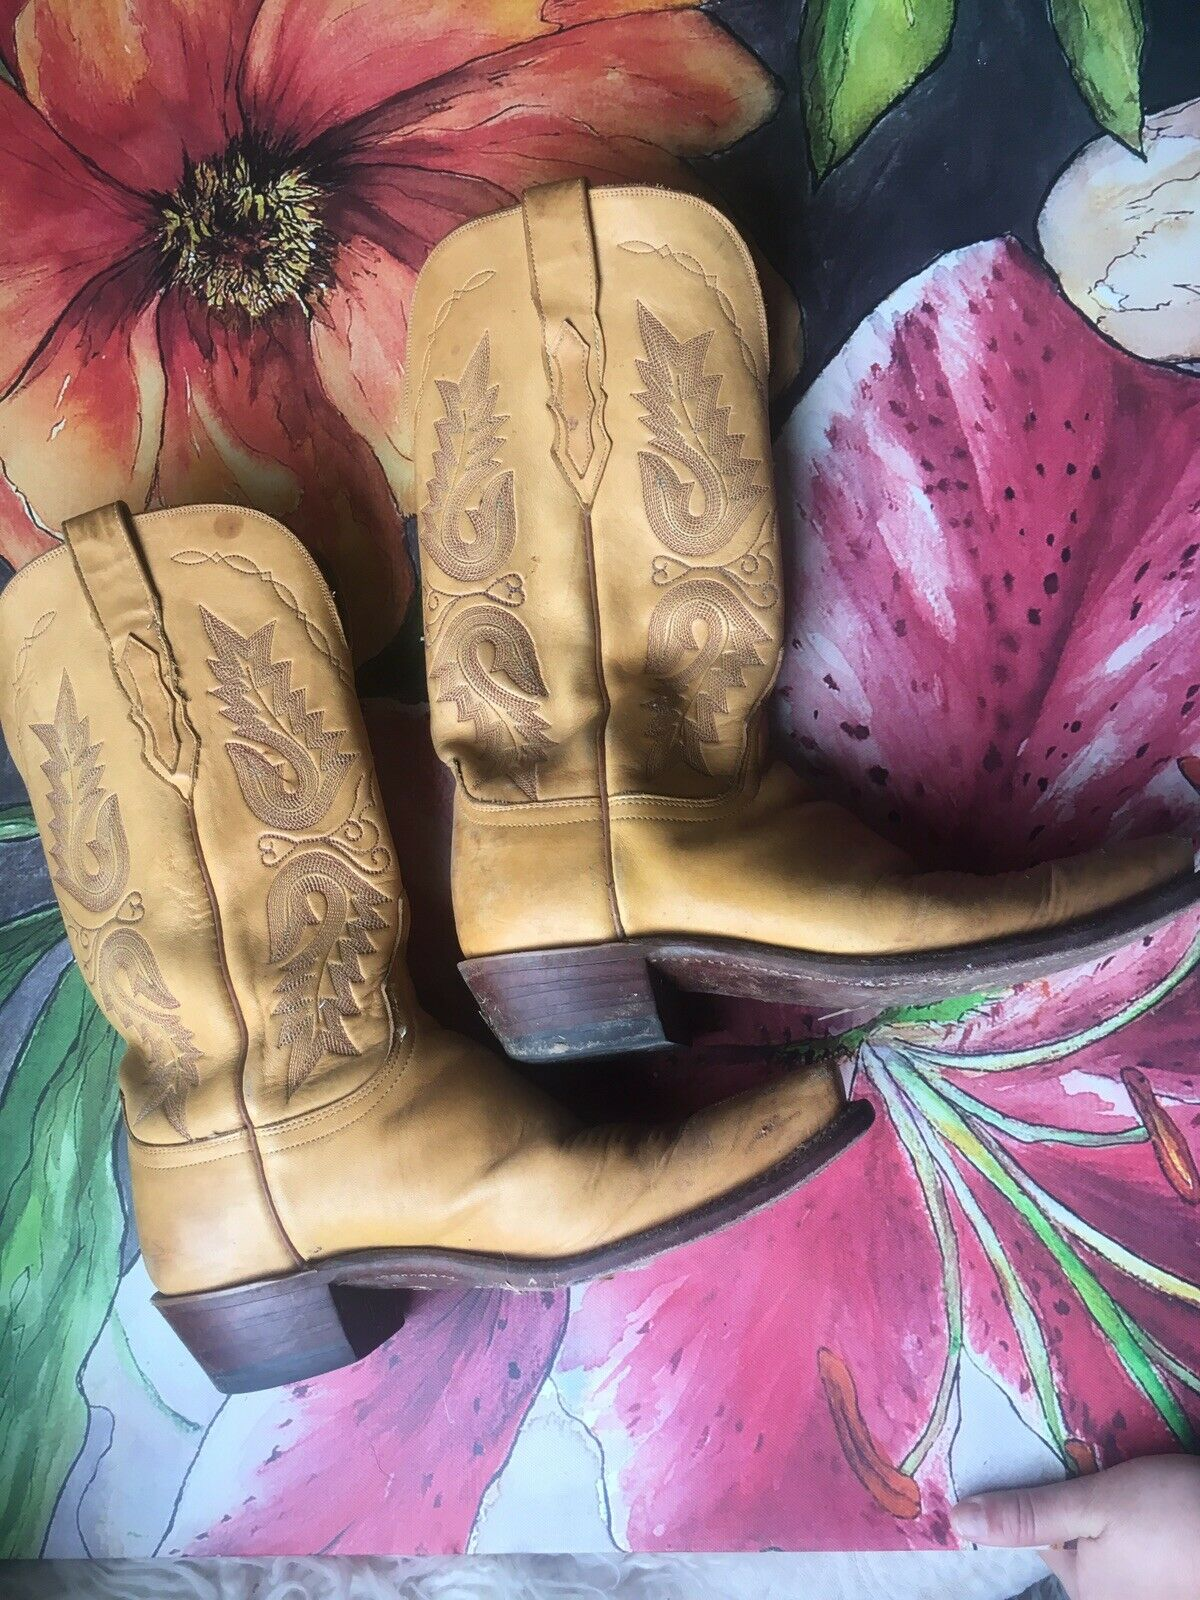 LUCCHESE 1883 1883 1883 Leather Yellow Texas Western Cowboy Boots 8.5 B 069f89